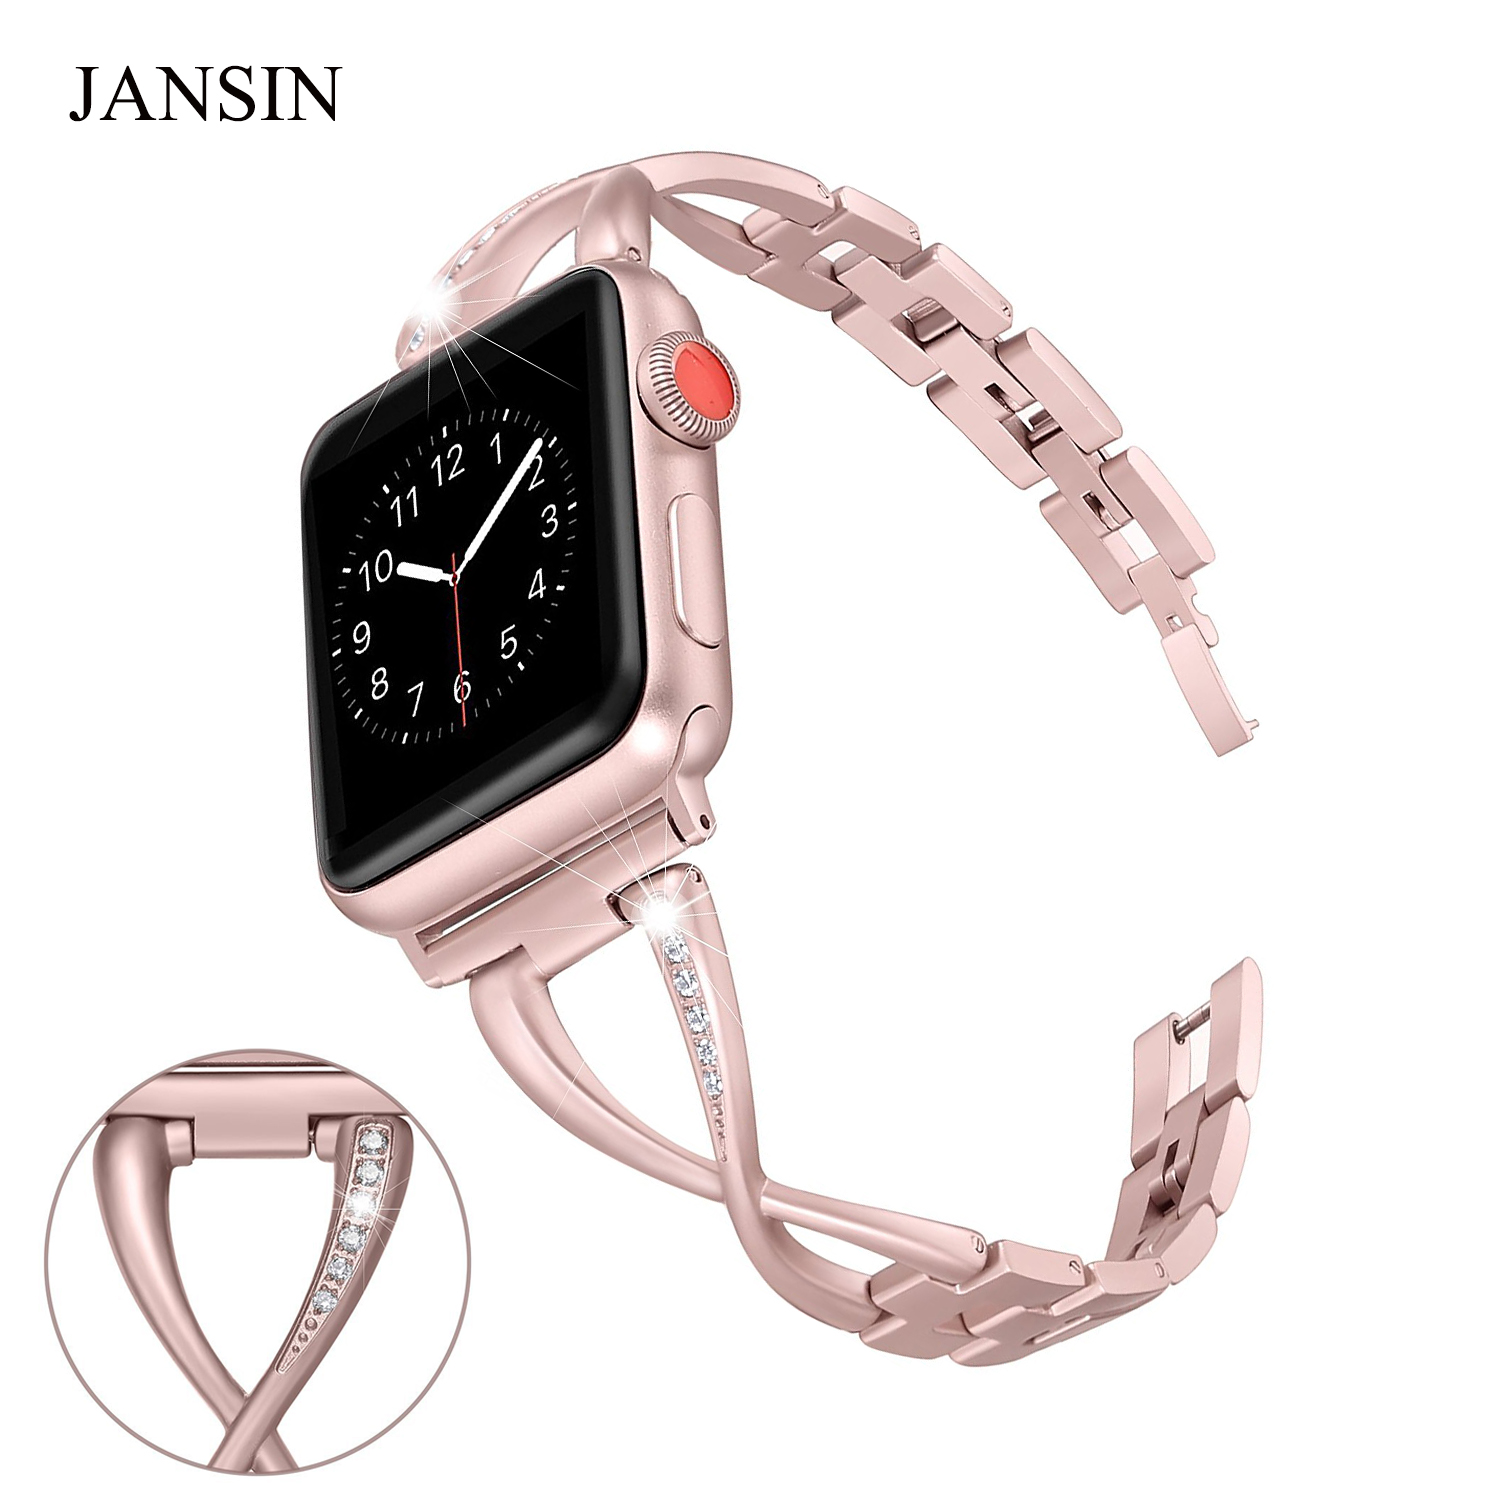 JANSIN Women Watch band for Apple Watch Bands 38mm/42mm Adjustable Stainless Steel Strap for iwatch series 3 2 1 Bracelet